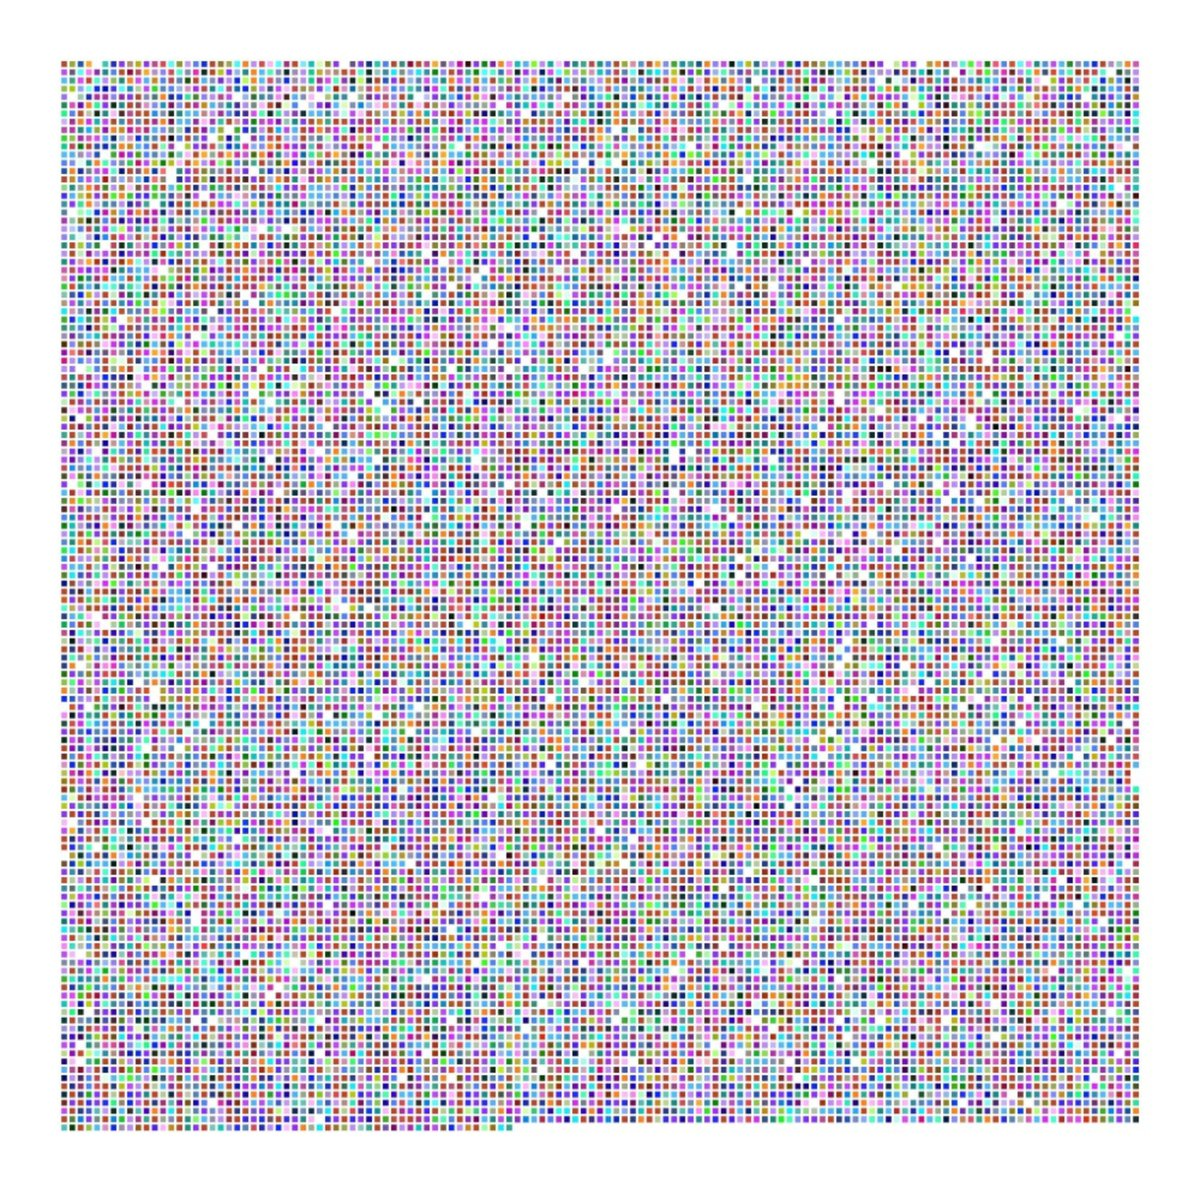 squares_frued_ego_margin_0.jpg